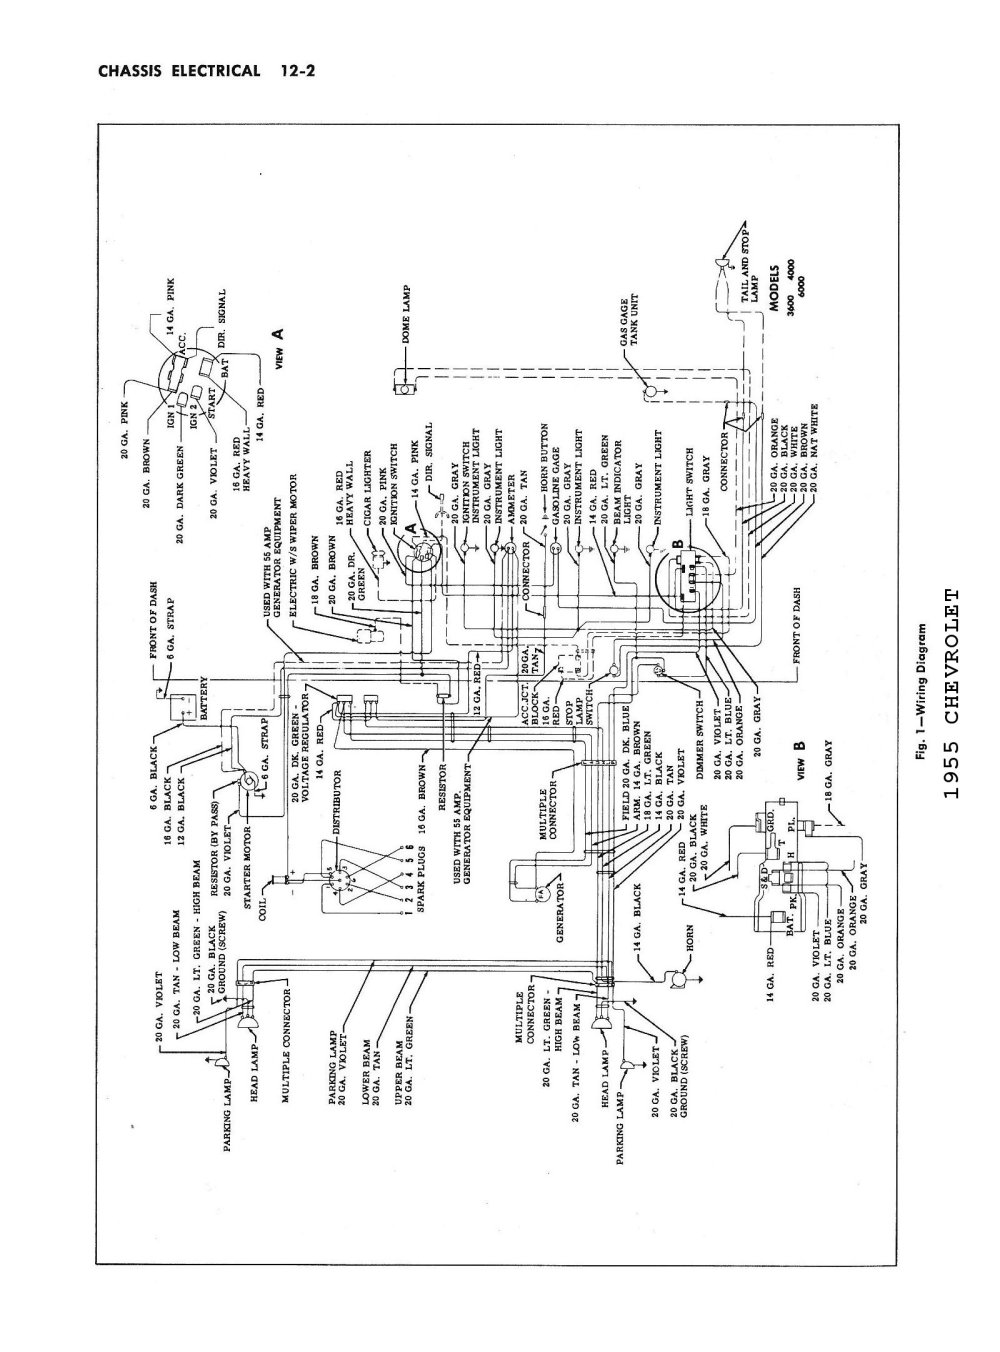 medium resolution of 1957 chevy wagon wiring harness wiring diagram 1957 chevy wagon wiring harness